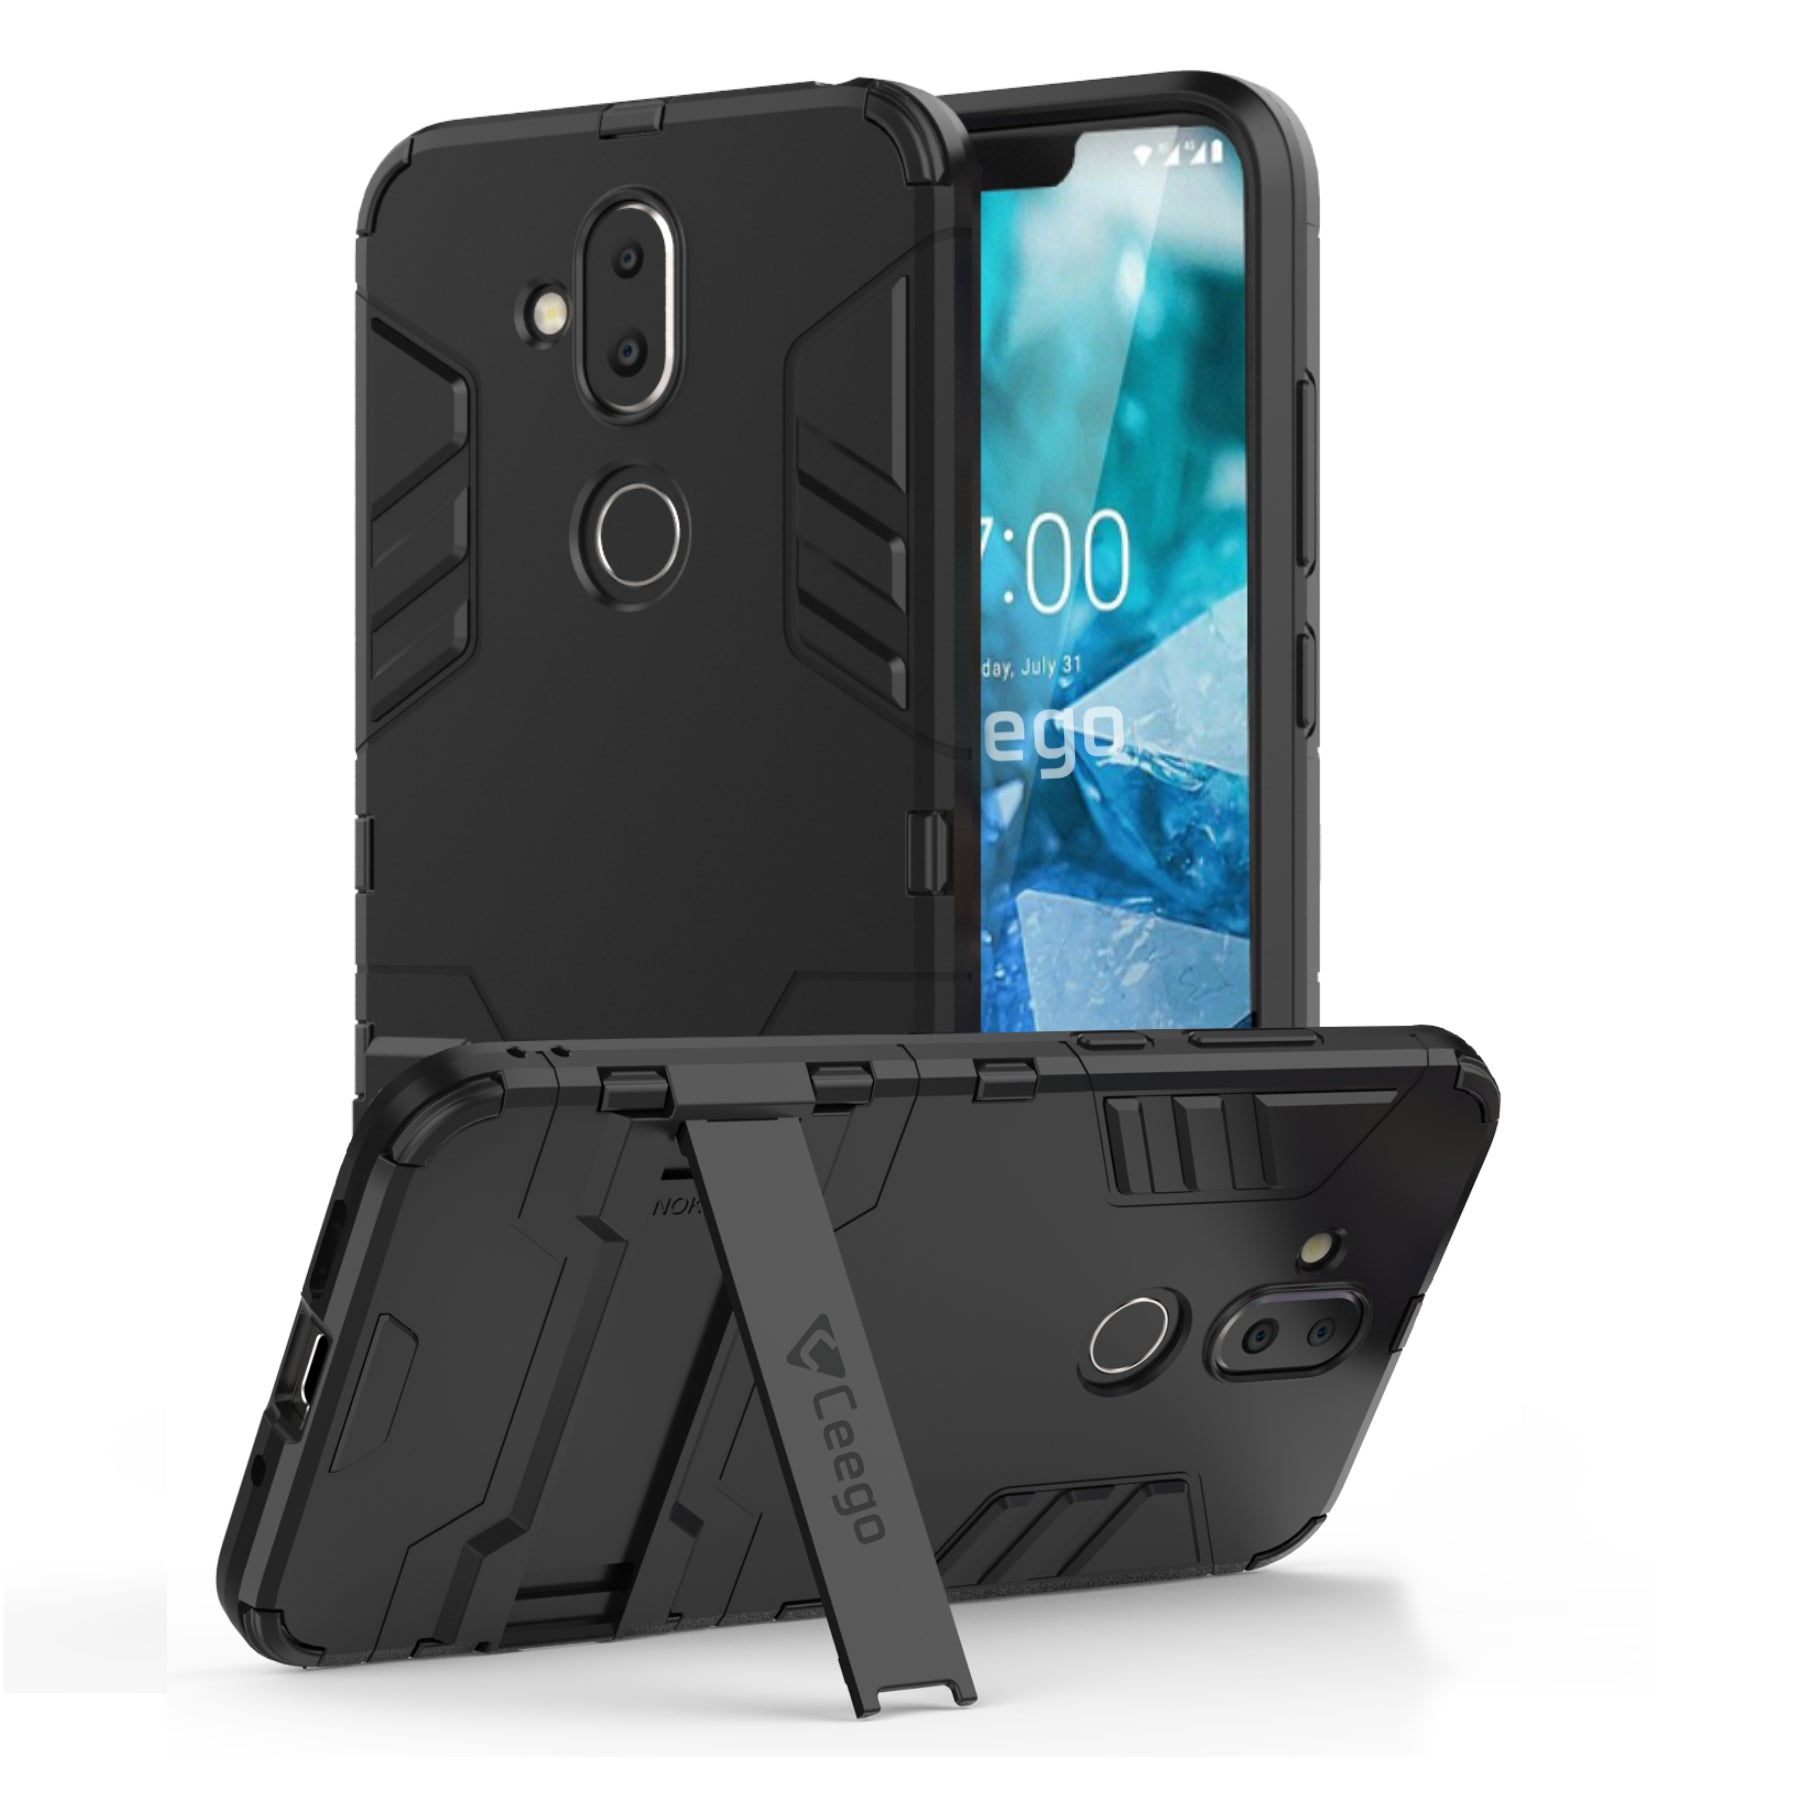 Ceego Stealth Defence Back Case for Nokia 7.1 Plus  – Matte Black